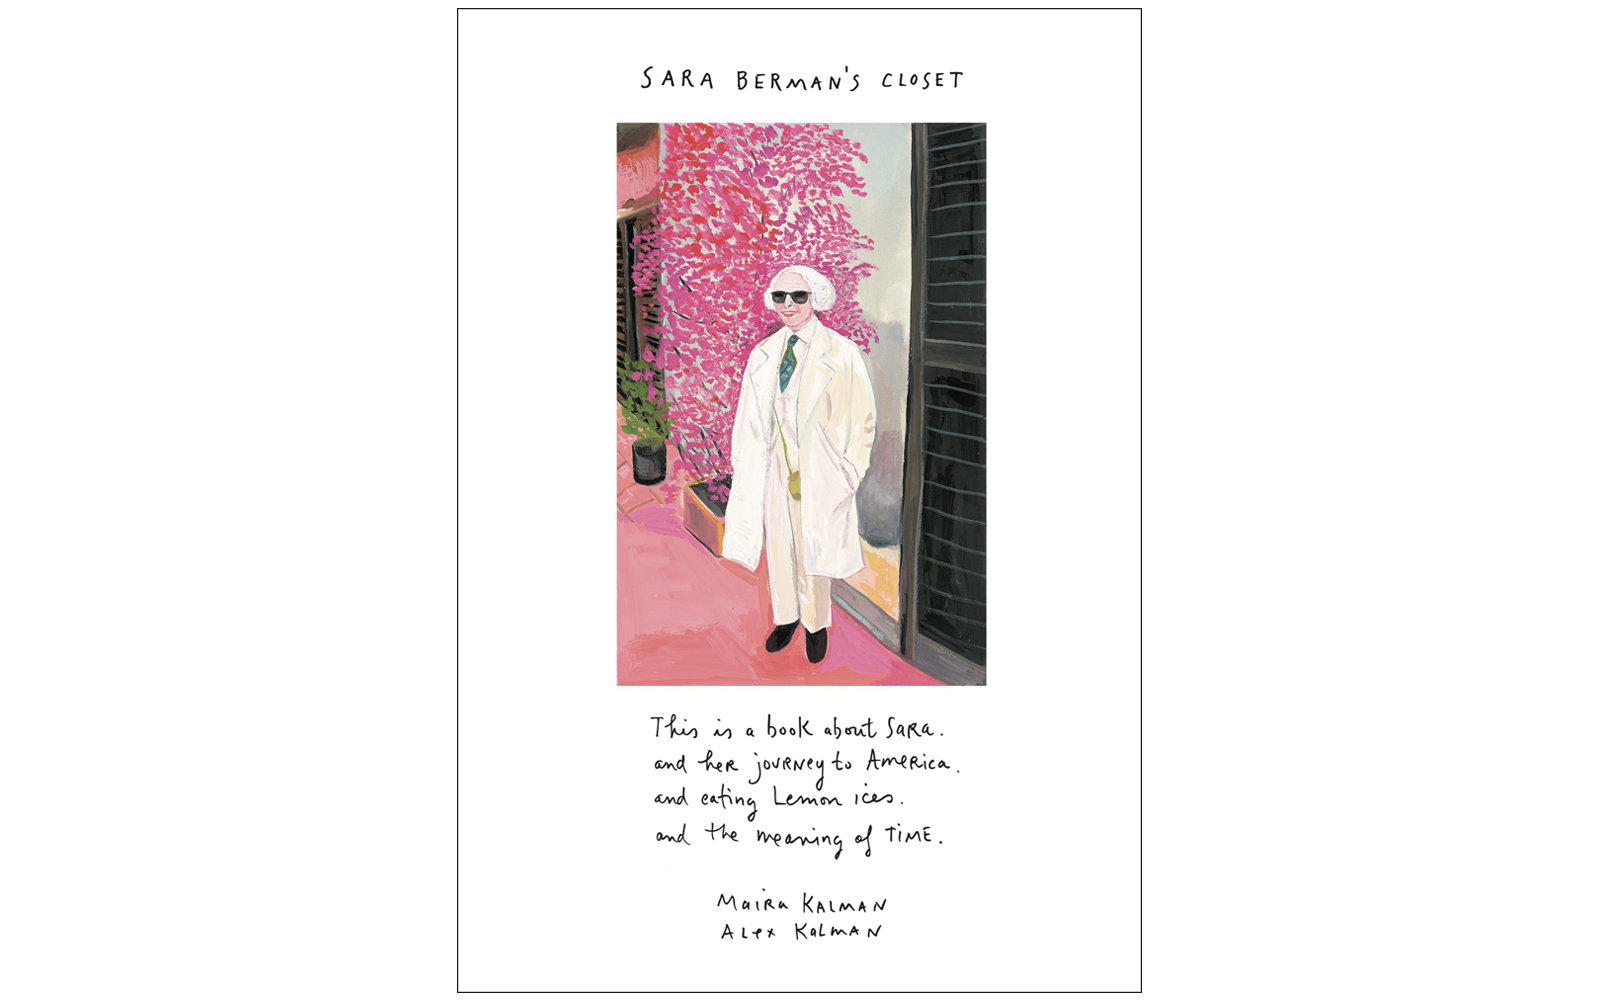 Sarah Berman's Closet  by Maira Kalman and Alex Kalman